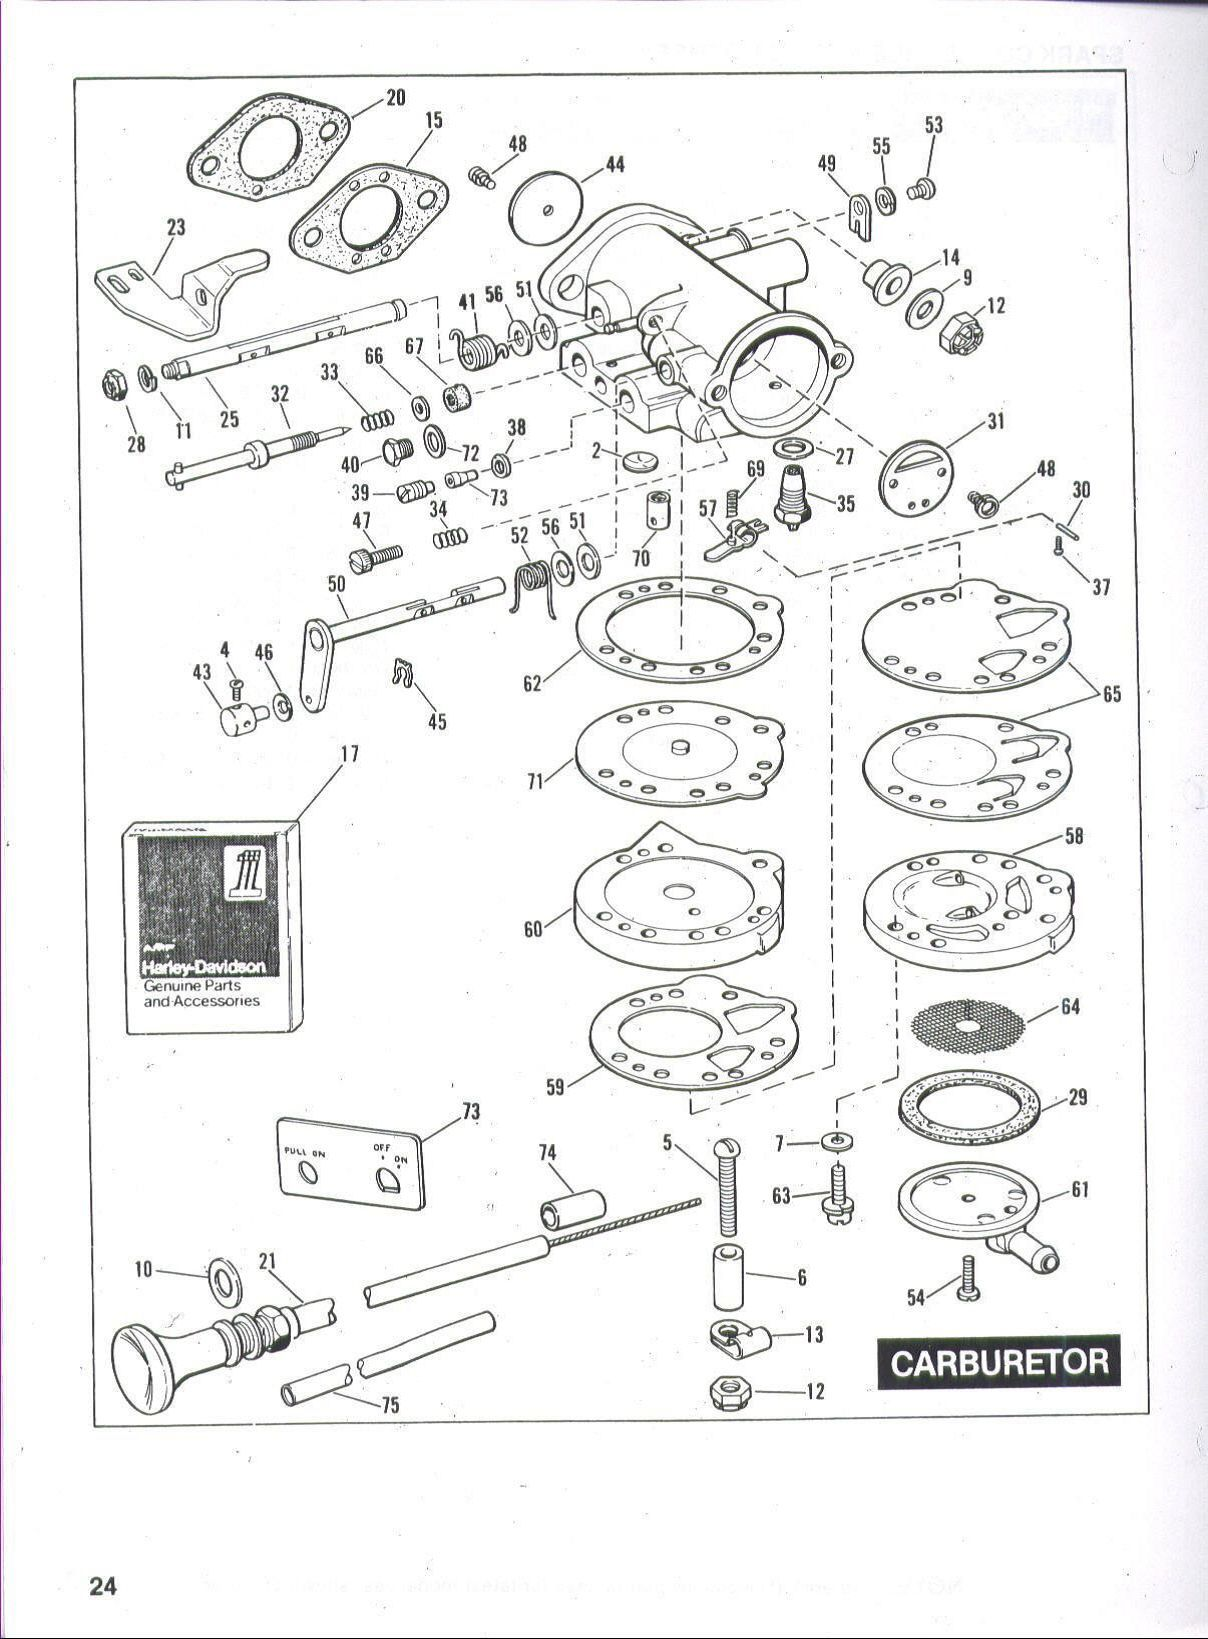 5176dbb44702a1adc4080edf7301936d harley davidson golf cart carburetor diagram utv stuff westinghouse golf cart wiring diagram at aneh.co